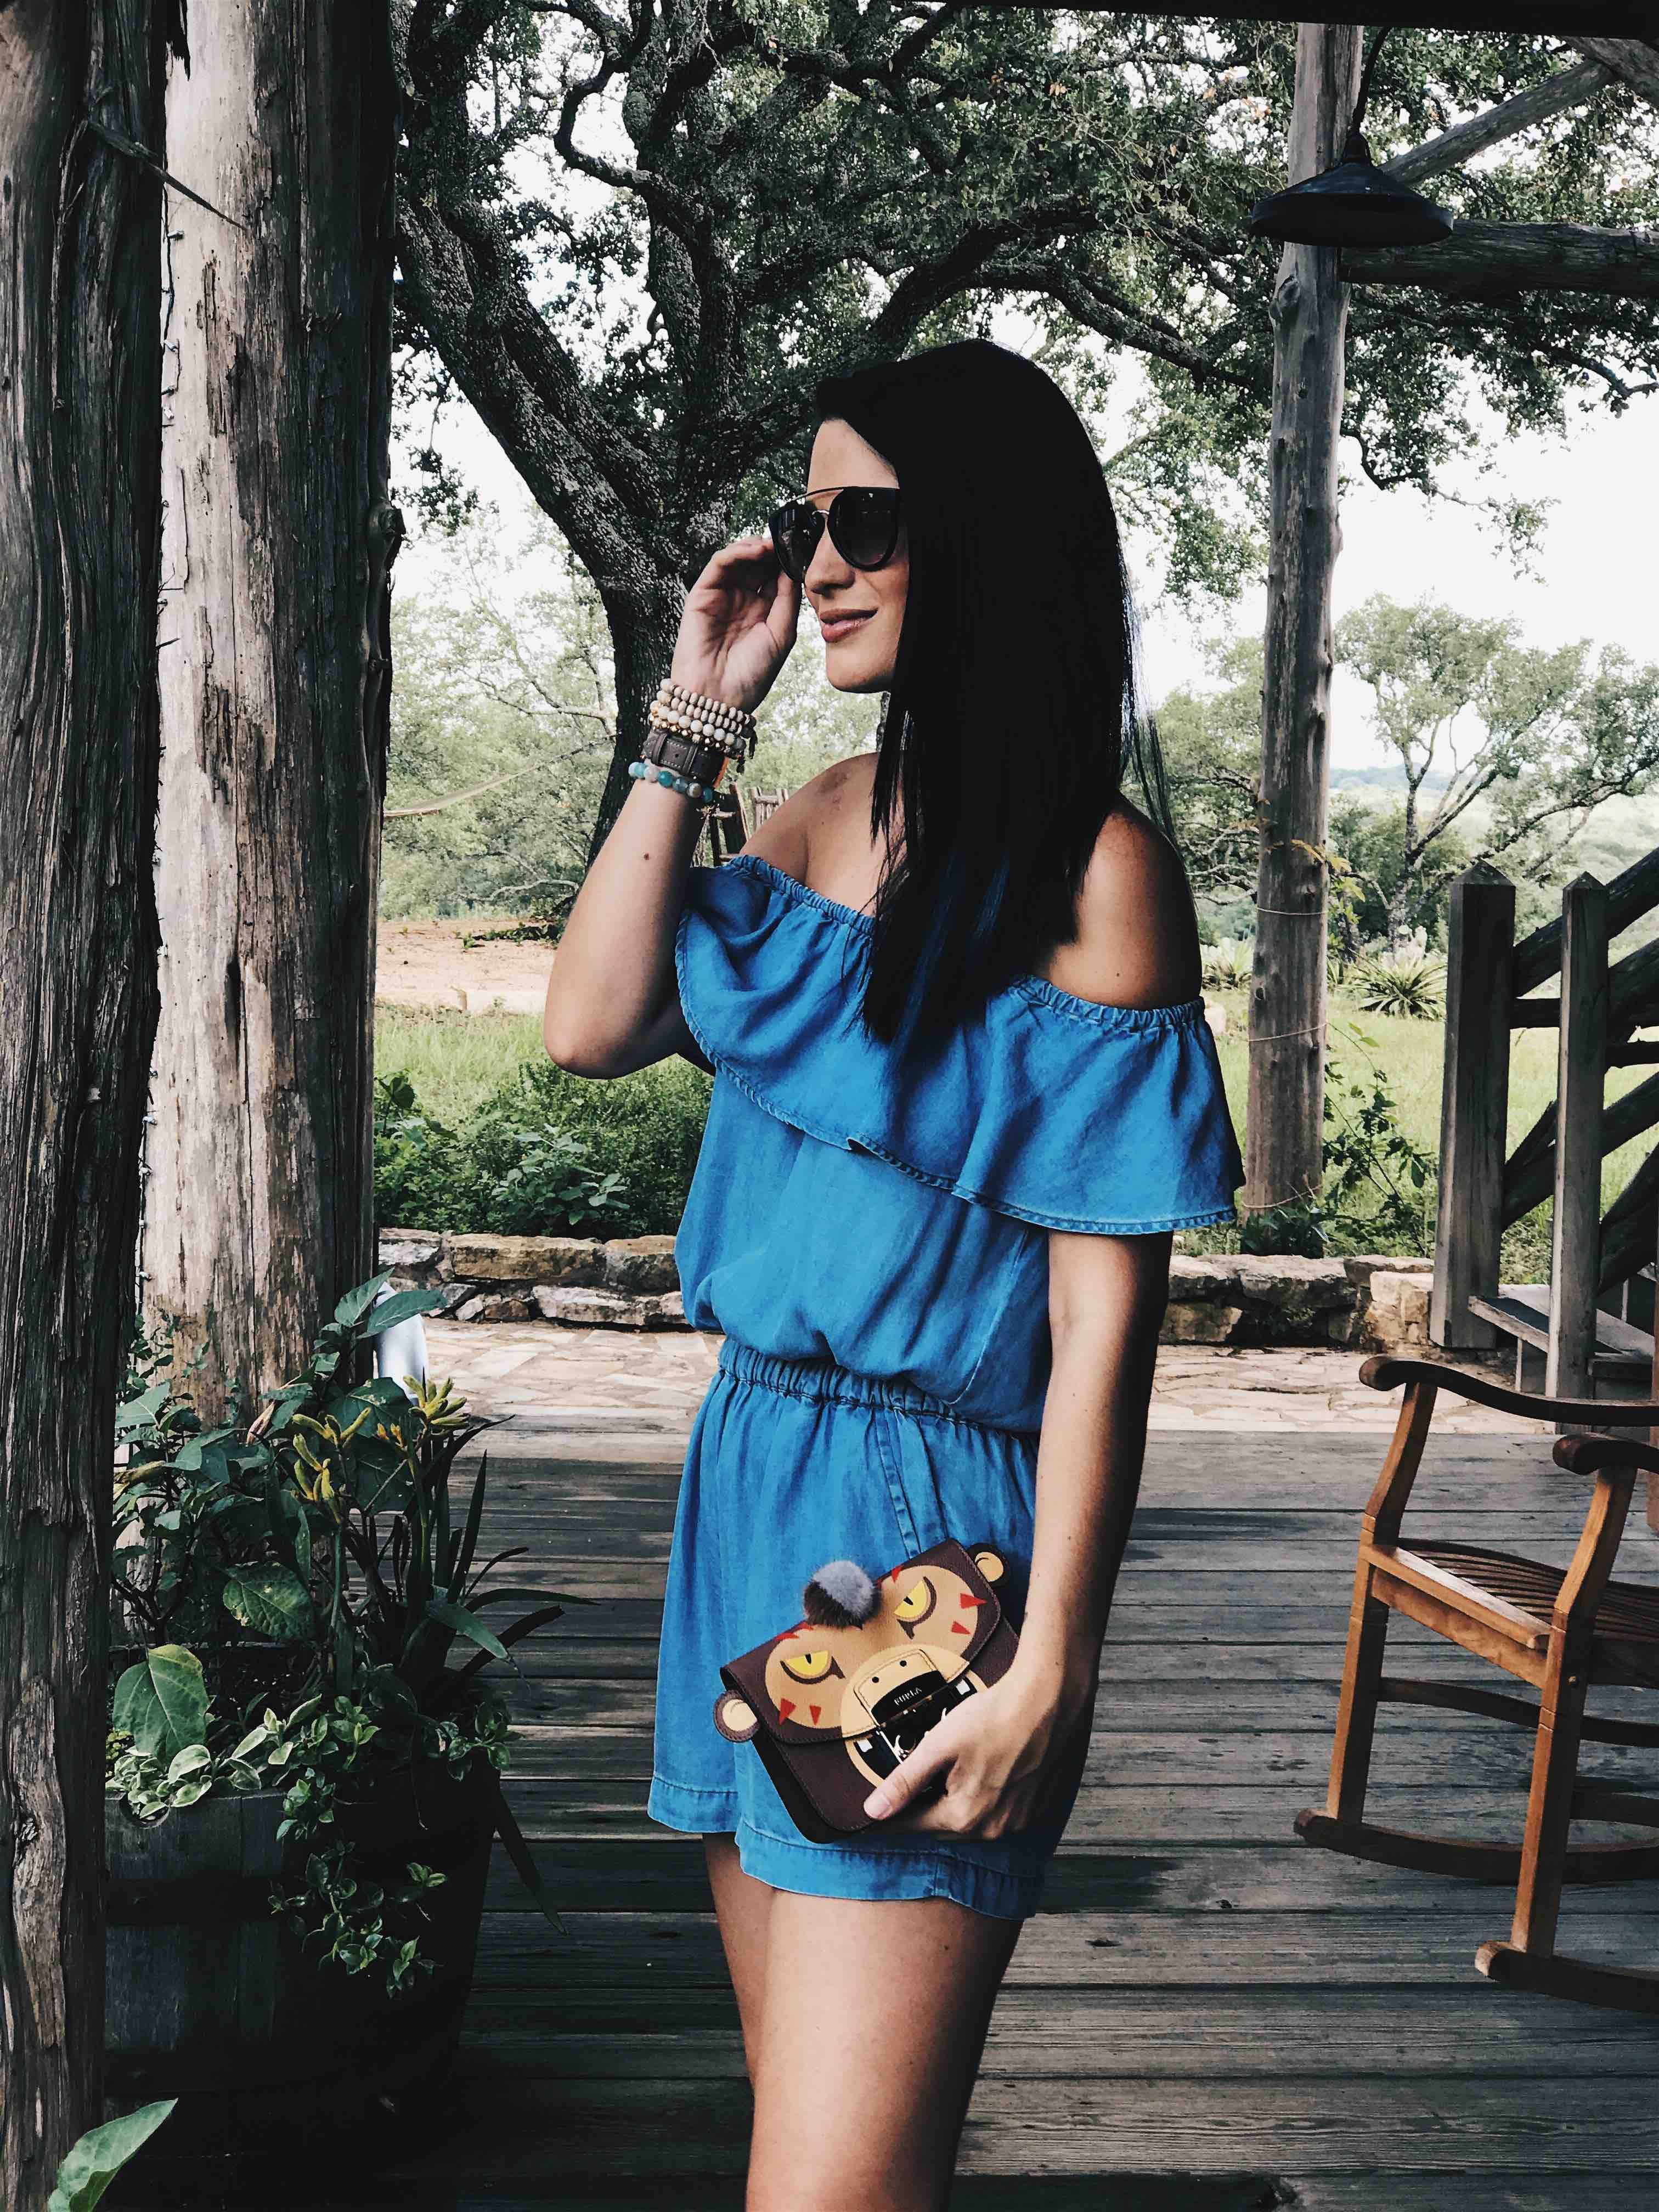 24d82fae572 DTKAustin shares details on the most versatile Splendid chambray romper and  how to wear it dressy for date night and casual on the beach.